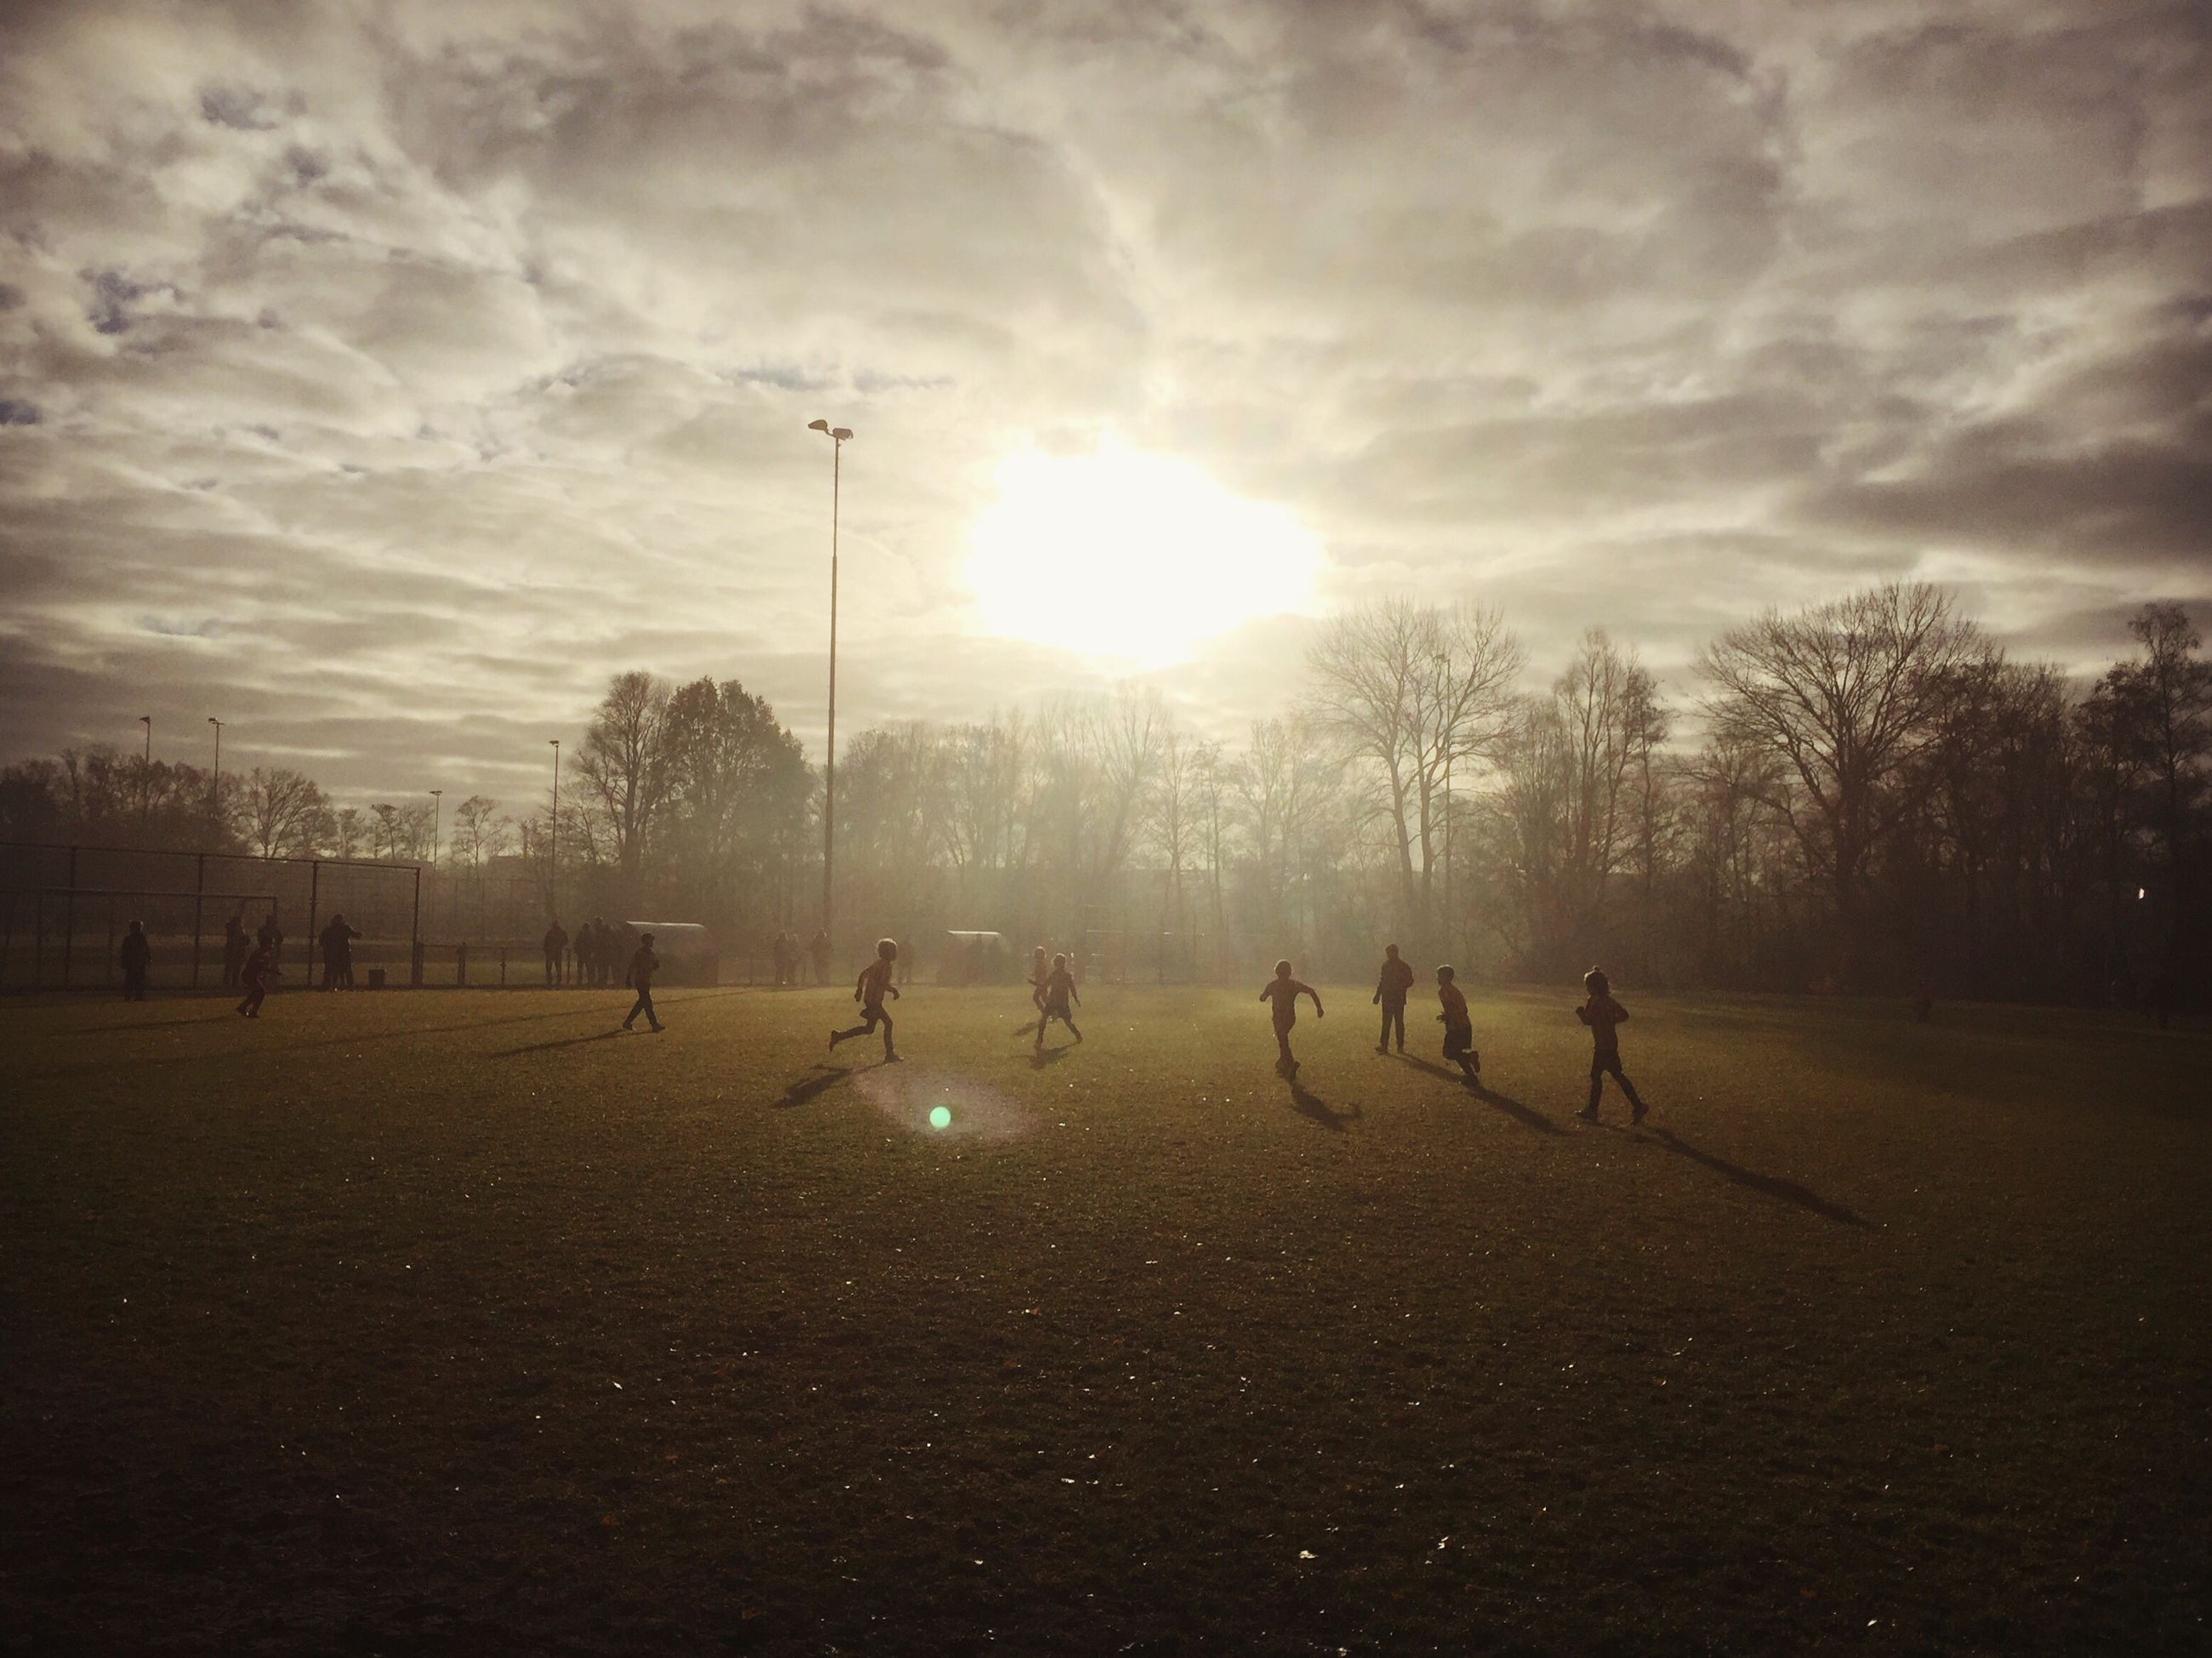 sky, sunlight, sun, sunset, tree, leisure activity, real people, silhouette, nature, large group of people, outdoors, men, landscape, beauty in nature, day, people